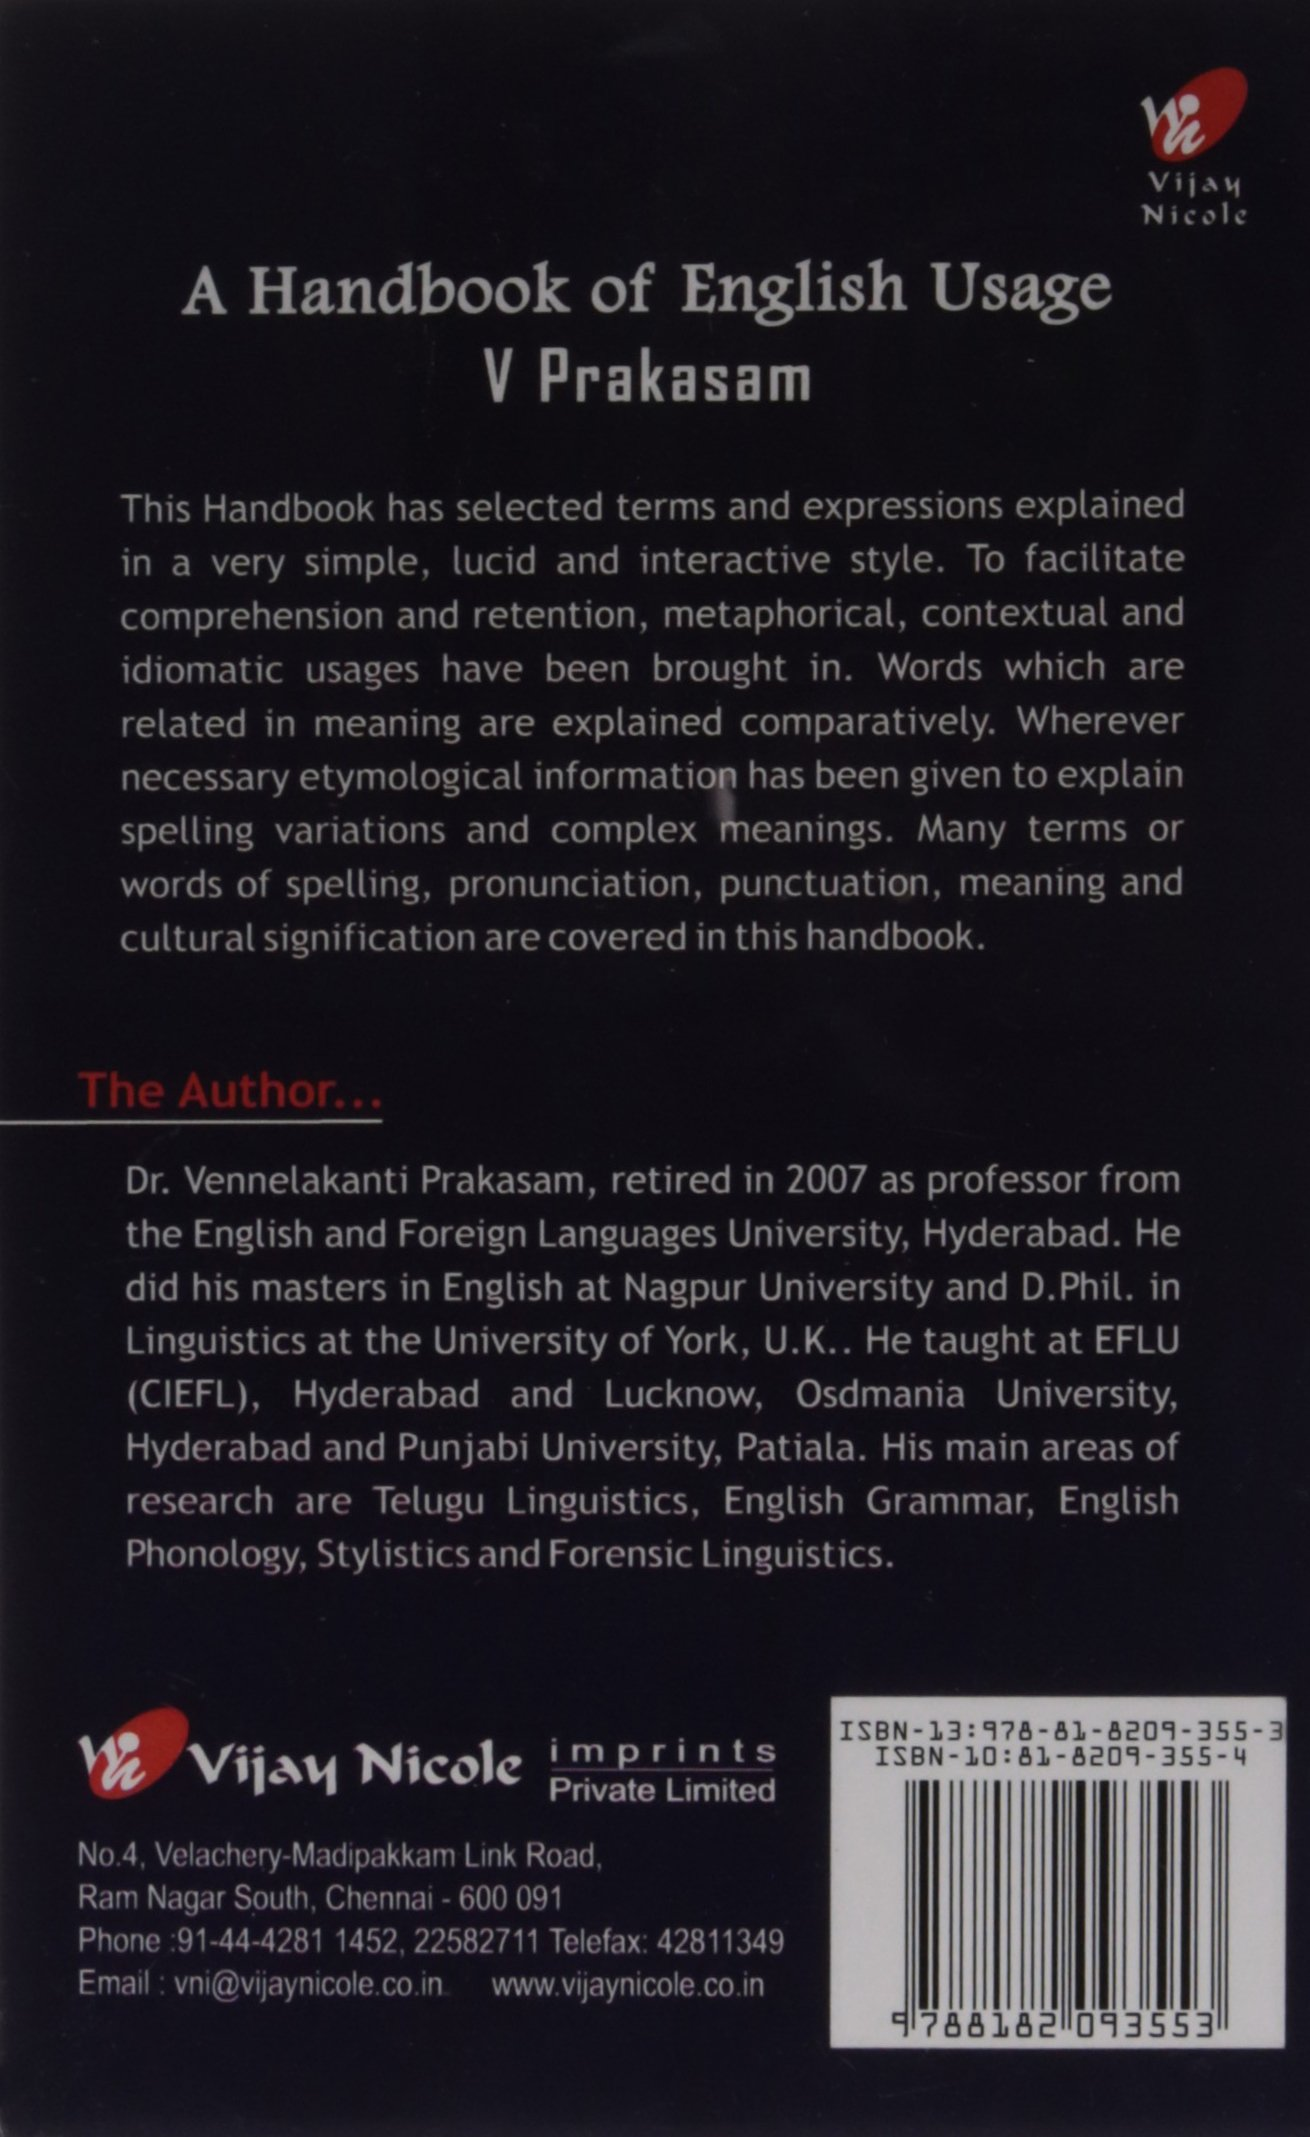 Amazon In Buy A Handbook Of English Usage Pb Prakasam V Book Online At Low Prices In India A Handbook Of English Usage Pb Prakasam V Reviews Ratings